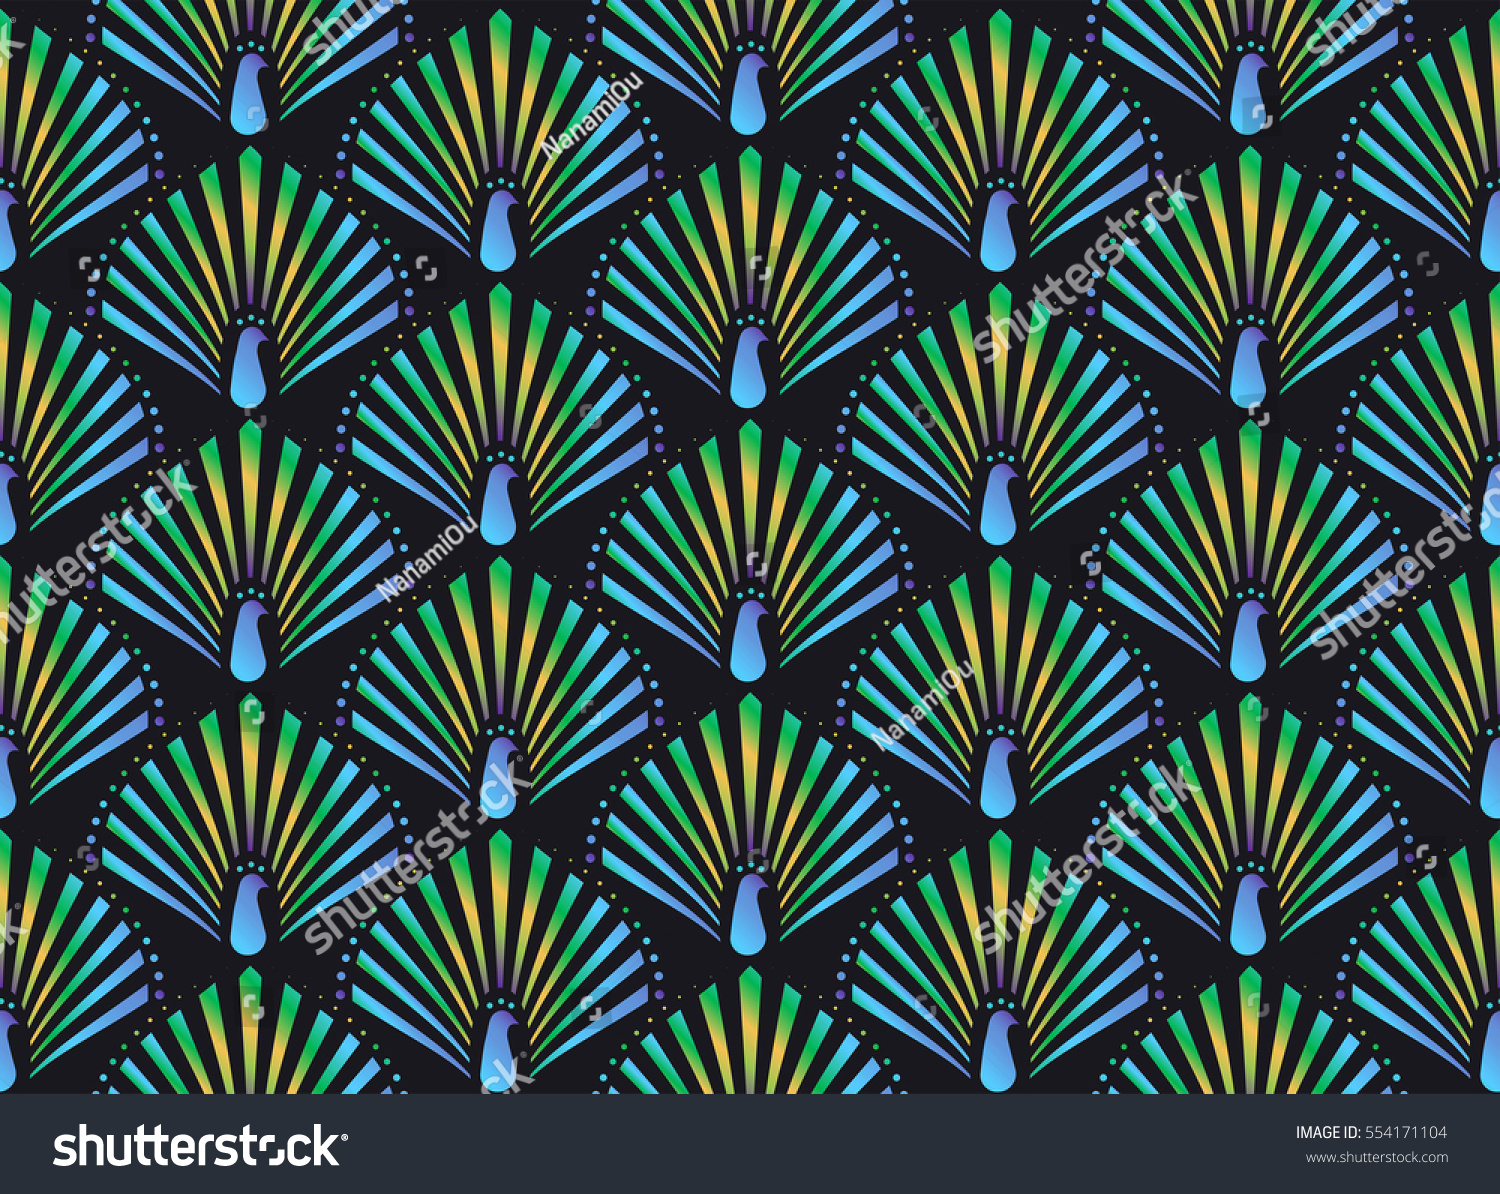 vector abstract peacock seamless - photo #16